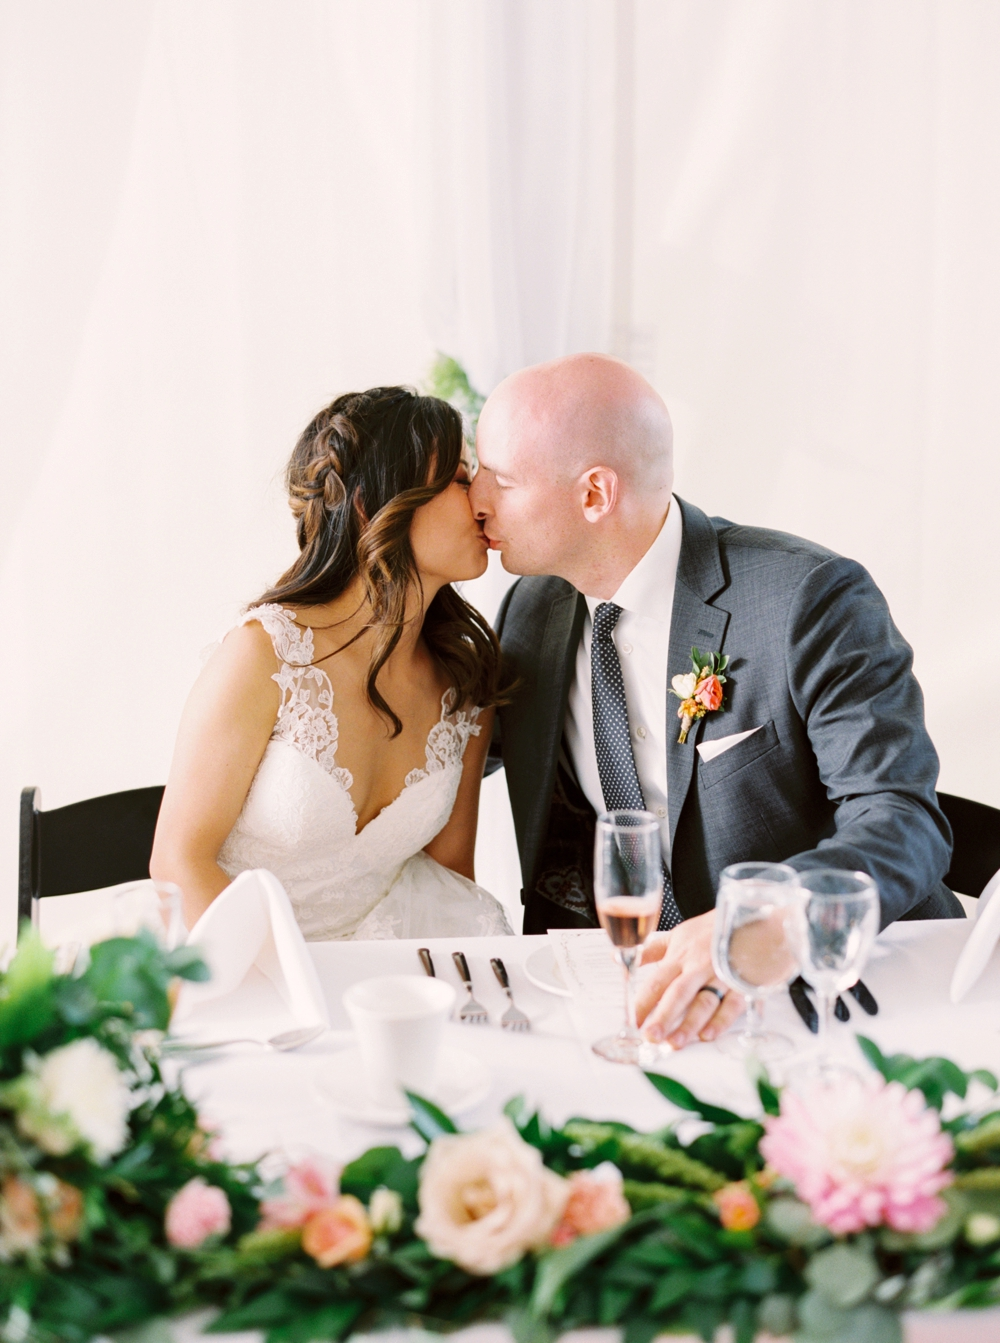 Calgary Wedding Photographer | Meadow Muse Pavilion Wedding | Canmore Photographers | Fish Creek Park Tent Wedding | Bride and groom kiss